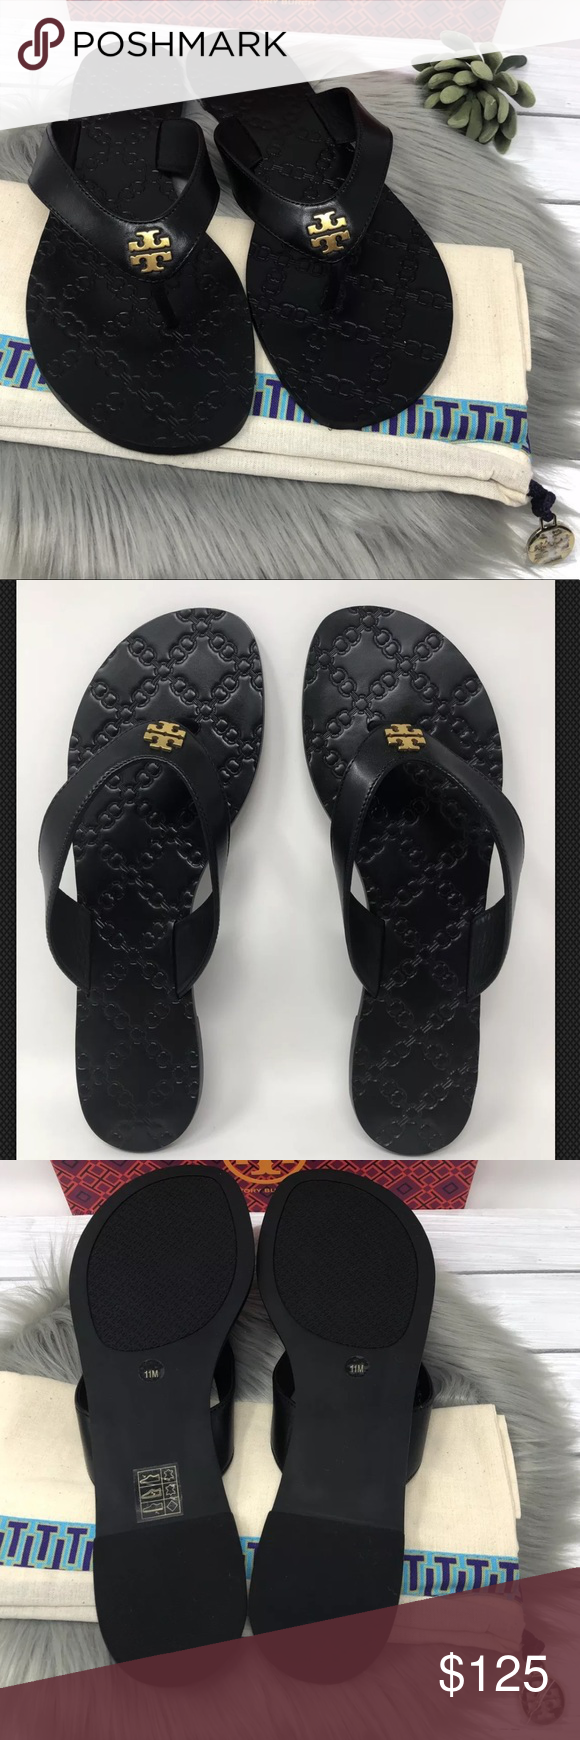 5c29acf08 NIB Tory Burch Monroe Thong Sandals Flip Flops Tory Burch Monroe Thong  Sandals Brand new in box. Color  Perfect Black Sizes  9 1 2